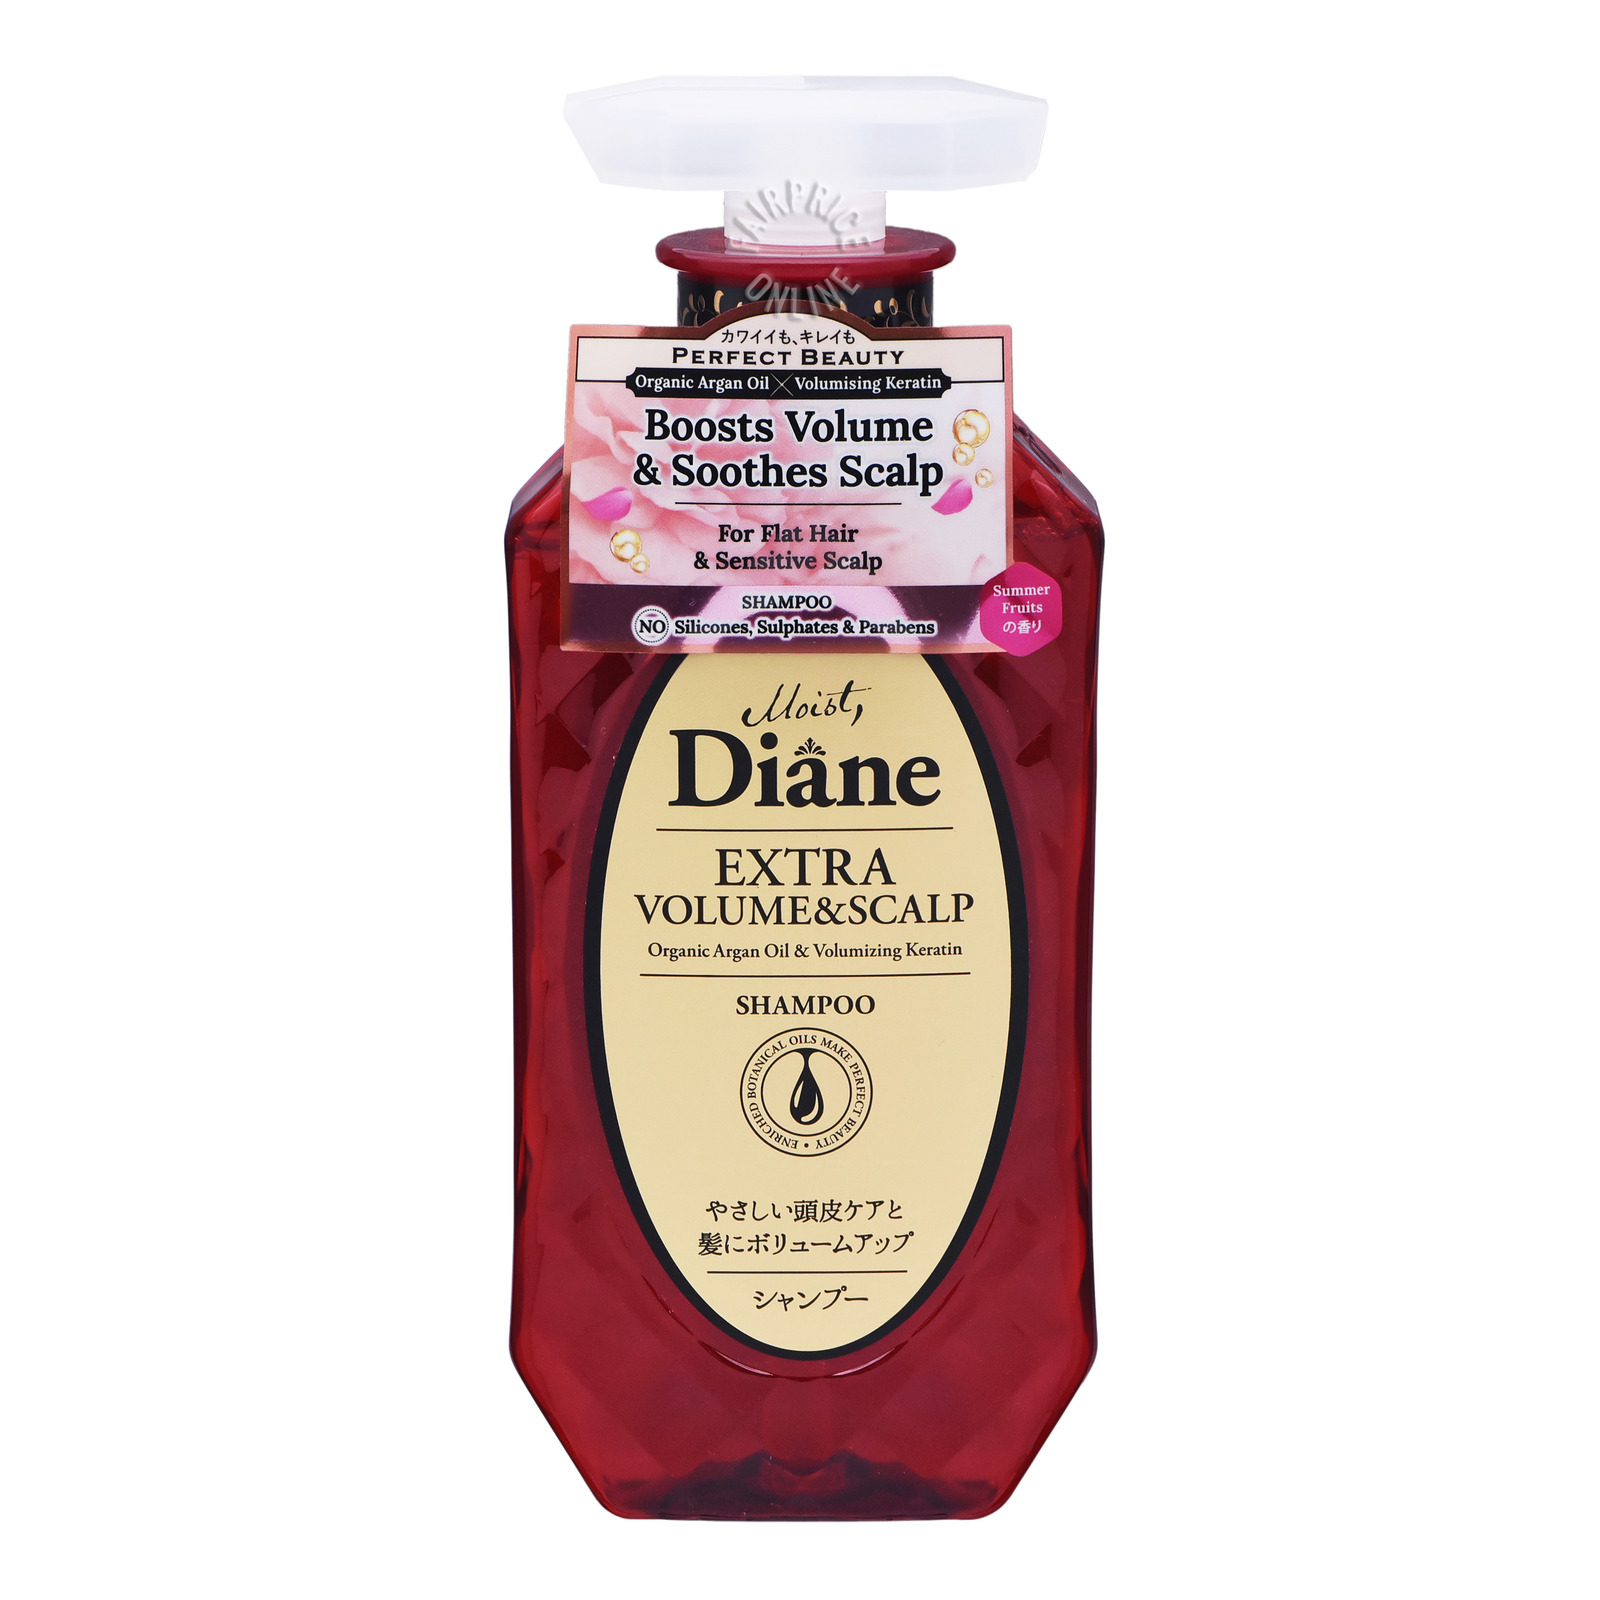 Moist Diane Shampoo - Extra Volume & Scalp